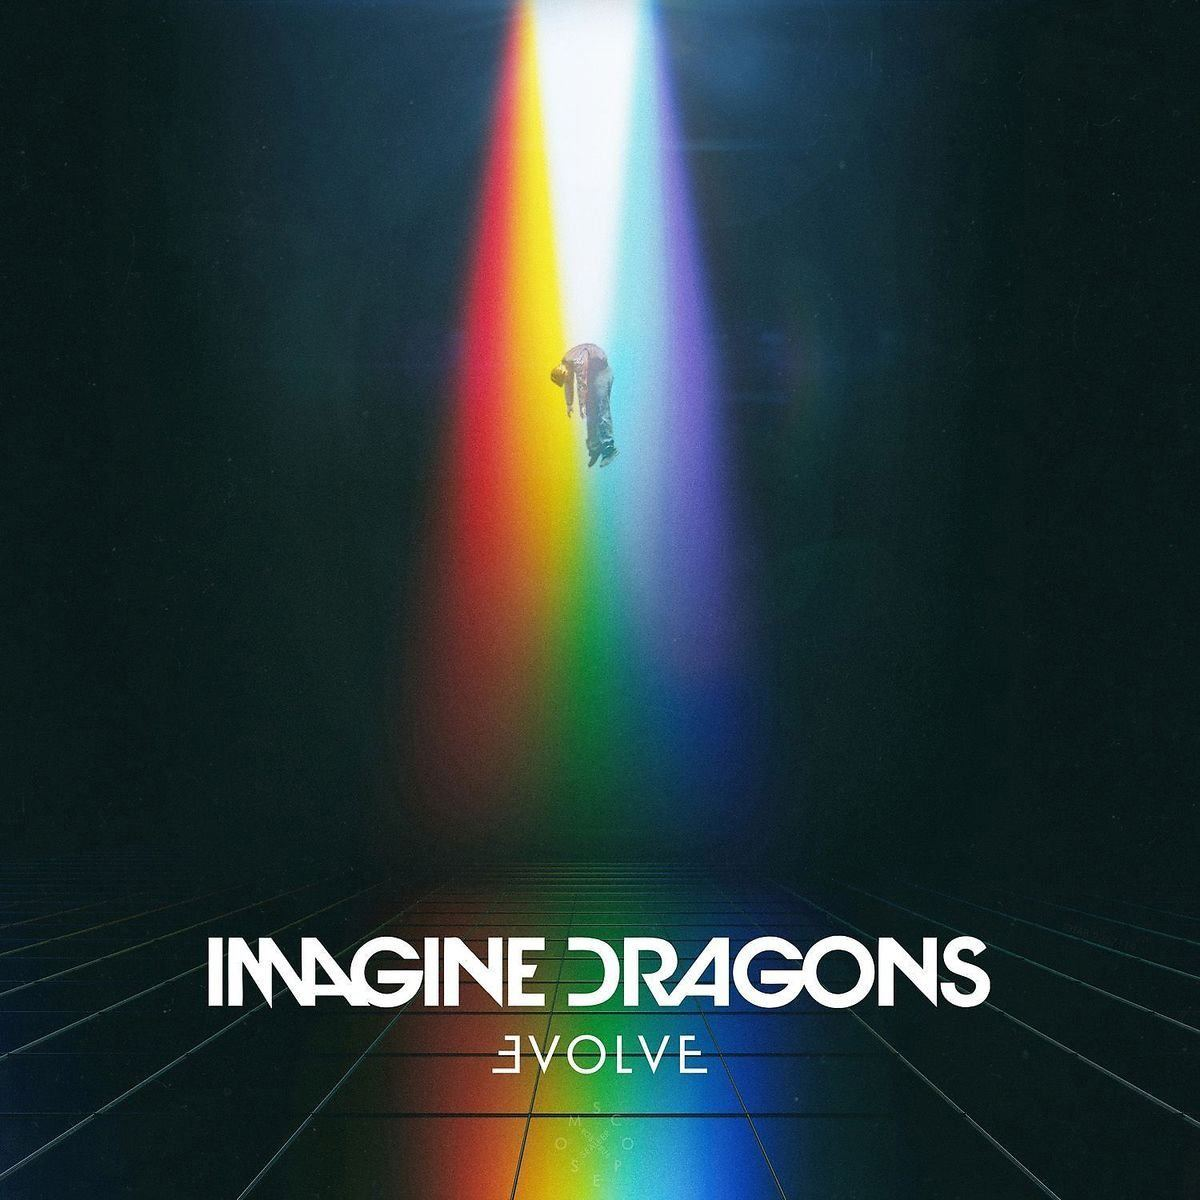 Cd imagine dragons evolve  - Sanborns